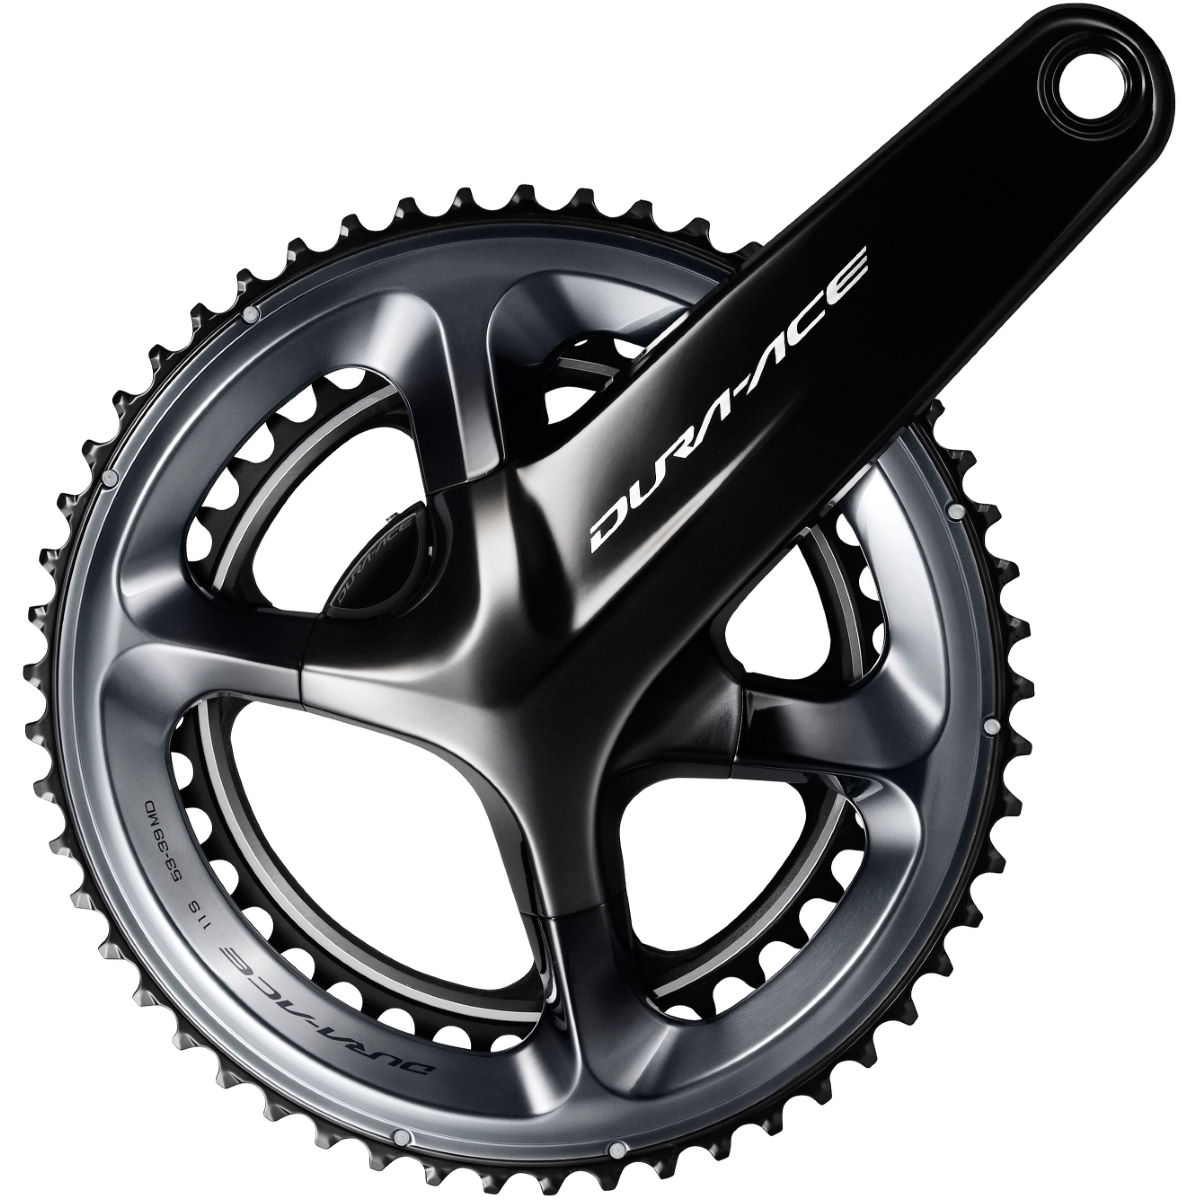 Shimano - FC-R9100-P Dura-Ace Power Meter chainset - 50/34 170mm